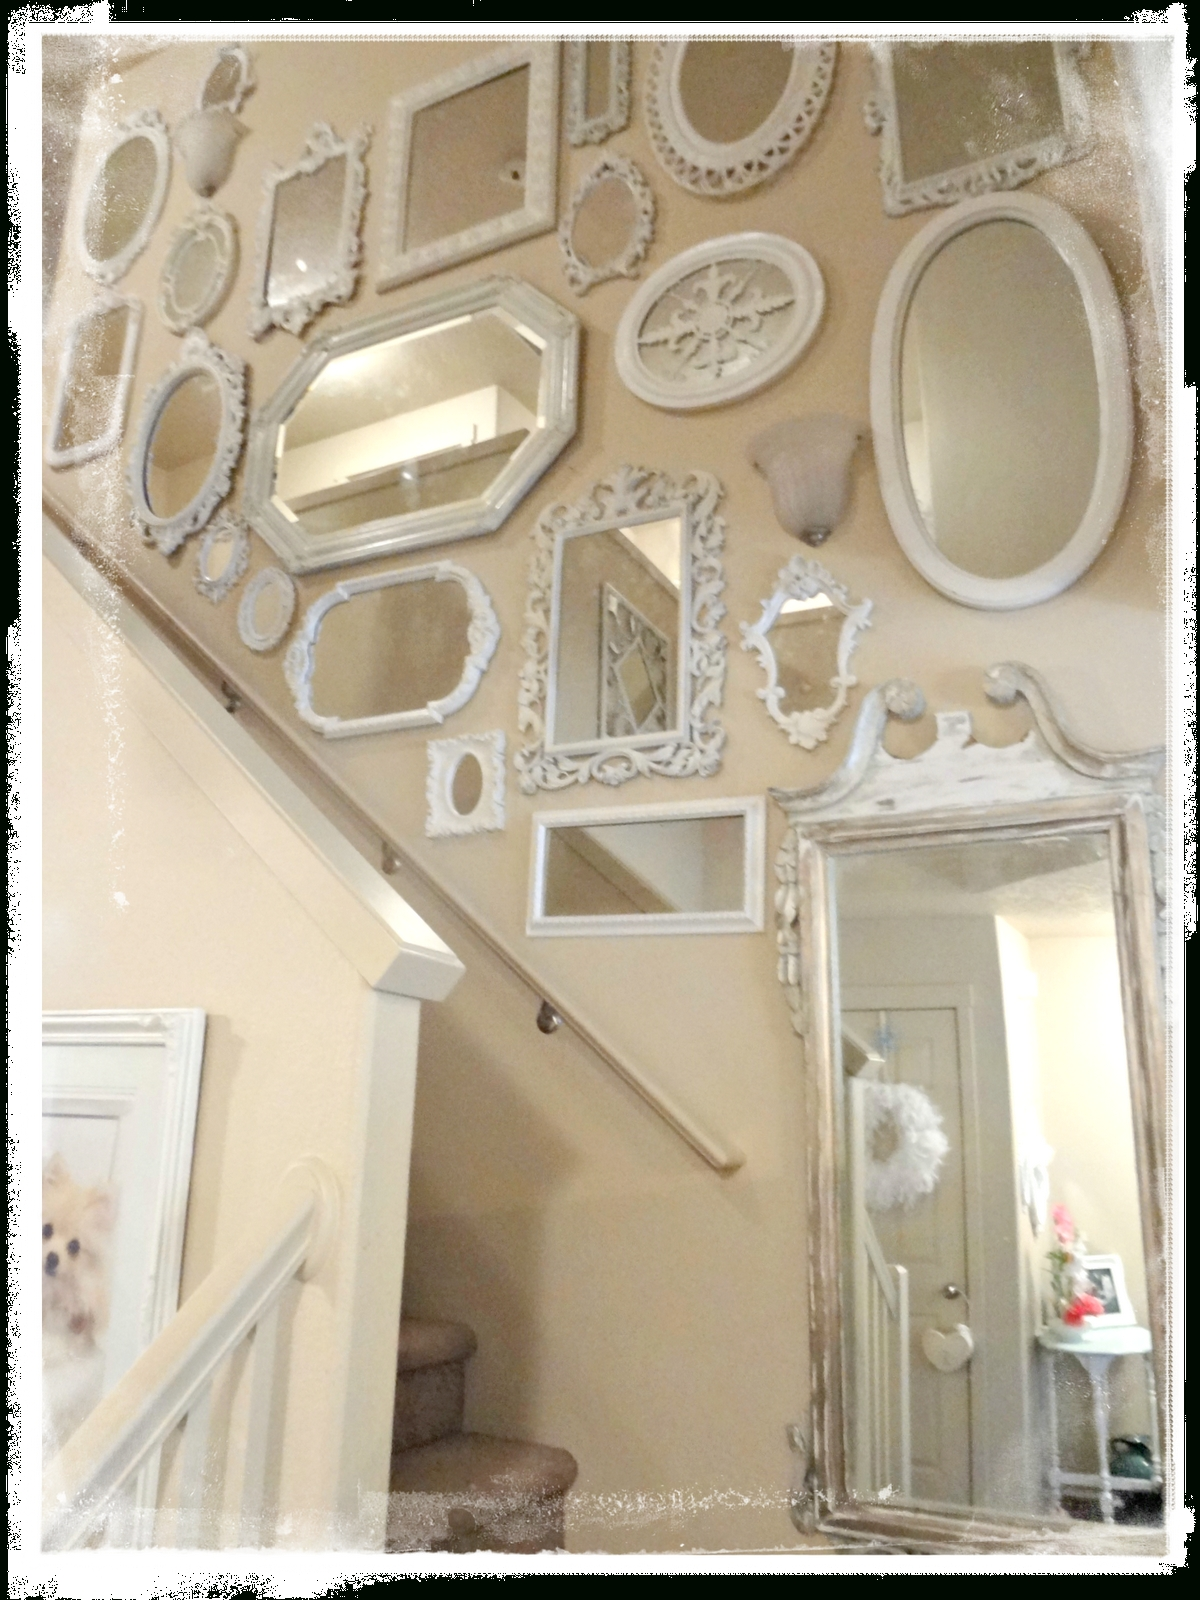 Not So Shabby - Shabby Chic: Mirrors, Flowers, & Fur Babies in Mirrors Shabby Chic (Image 13 of 25)